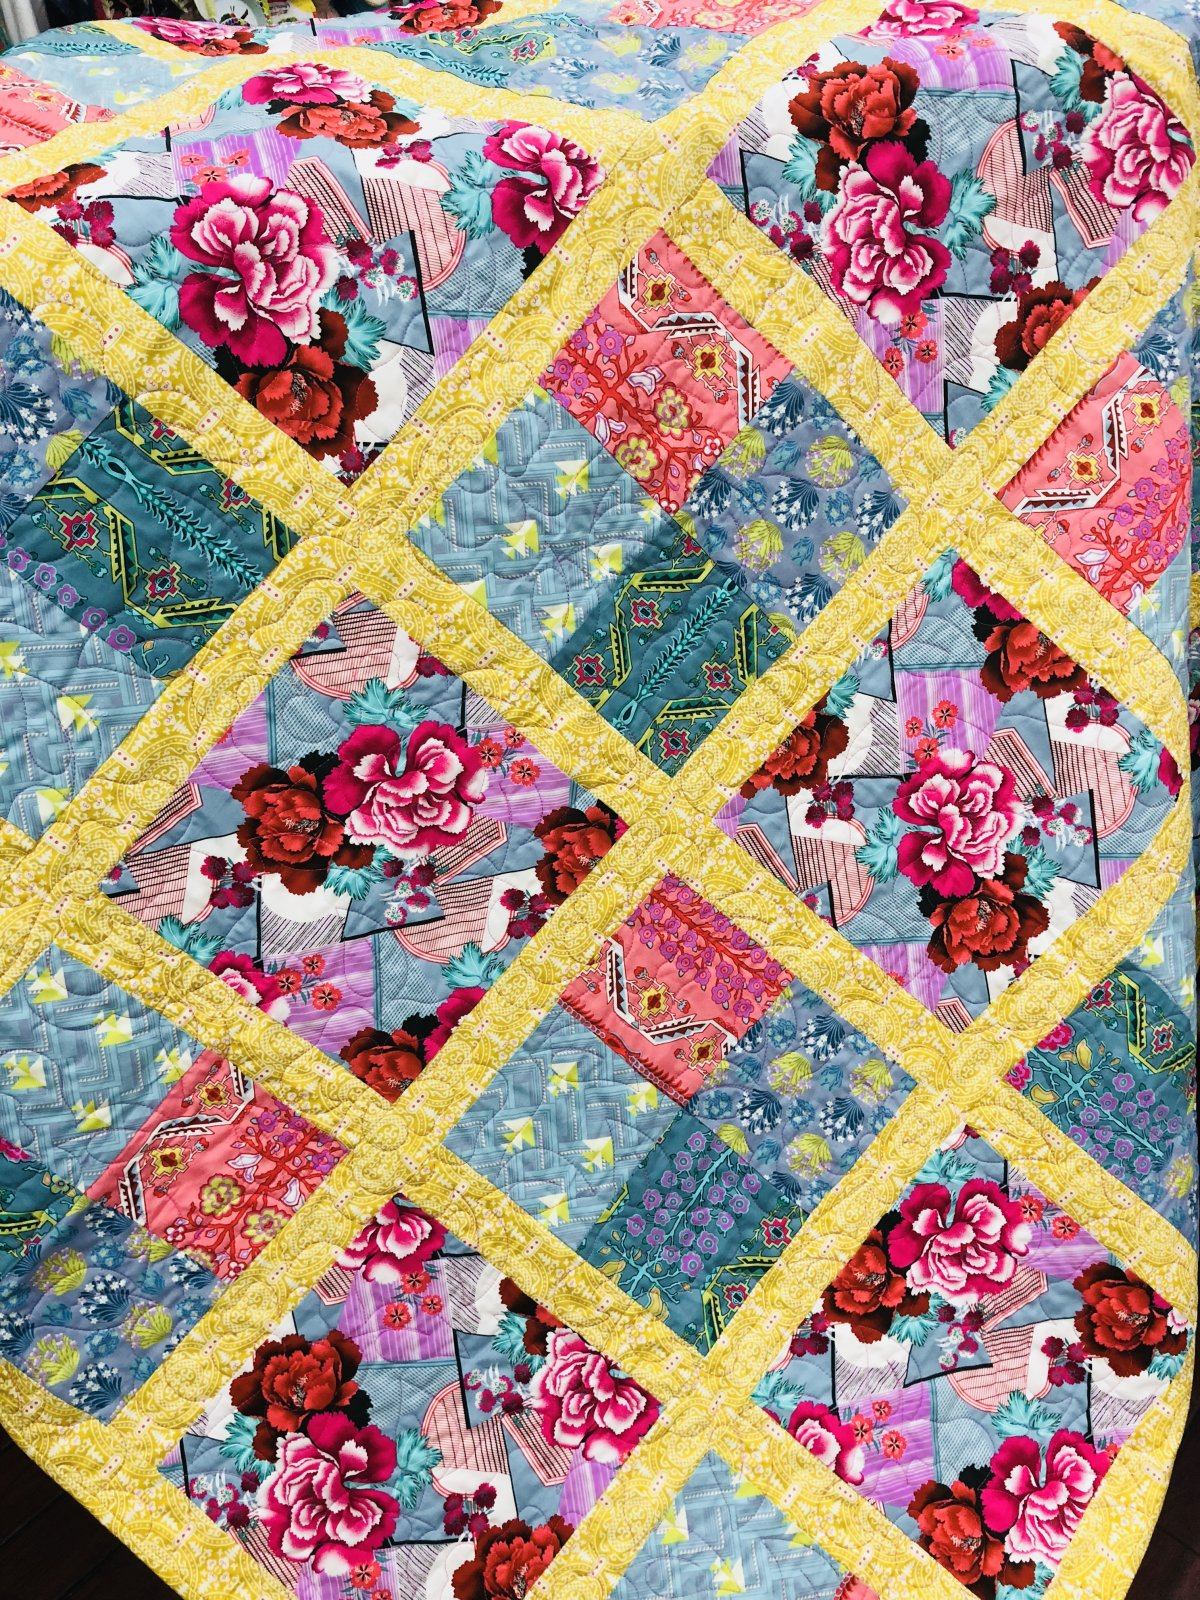 The Cabbage Flower Quilt